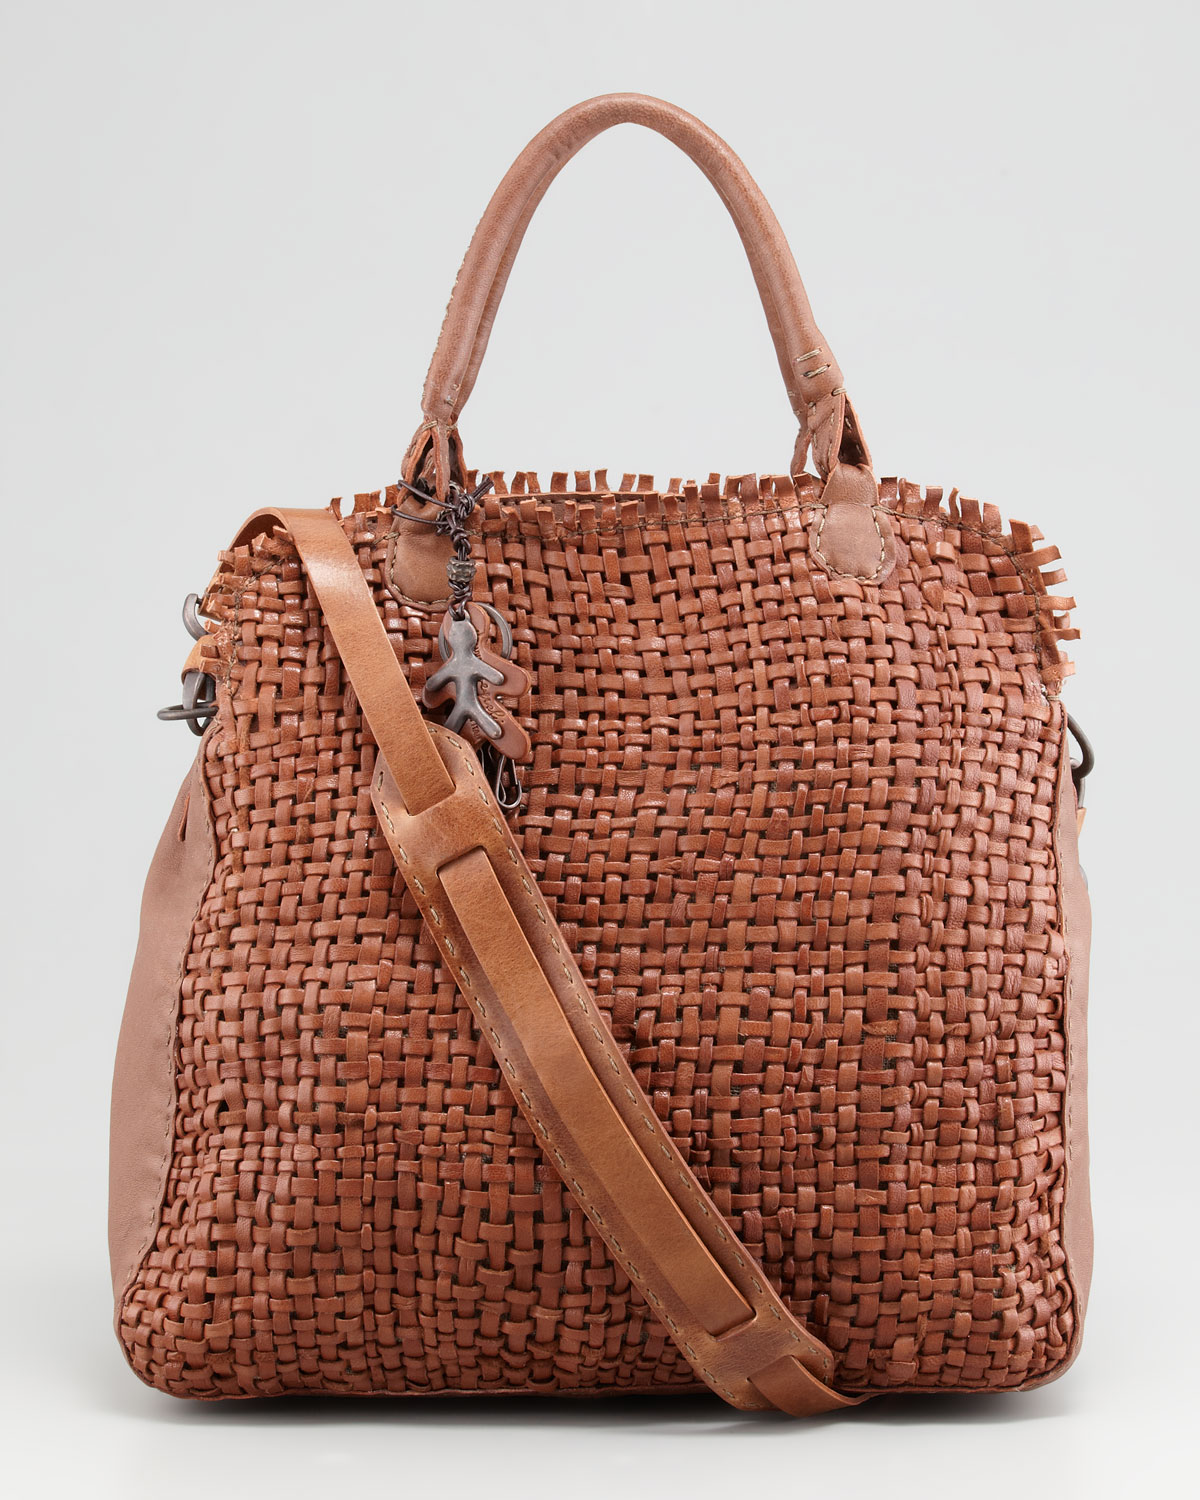 Greatest Lyst - Henry Beguelin Woven Leather Tote Bag in Brown ZX28